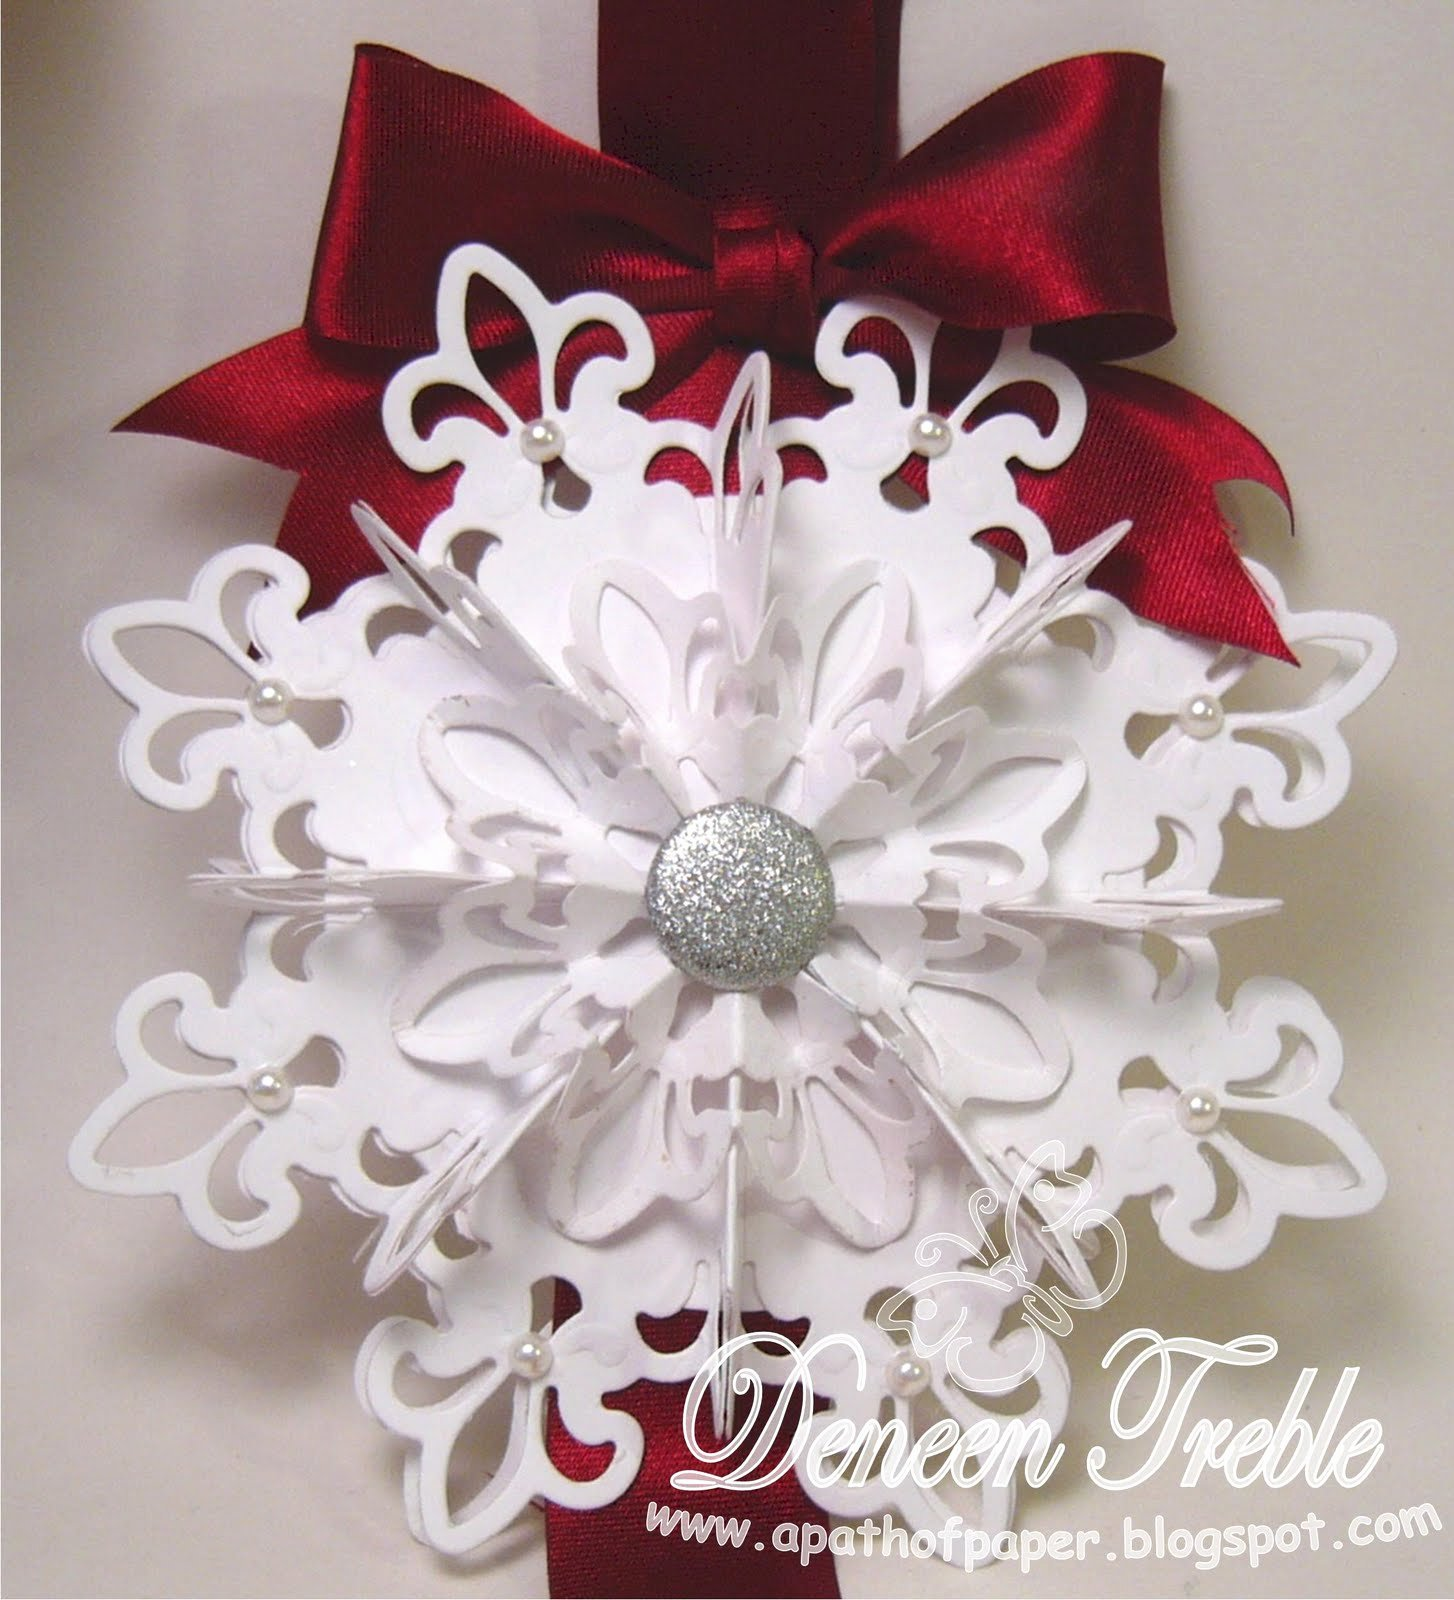 How to Make 3d Snowflakes Inspirational A Path Of Paper top Tip Tuesday Snowflakes